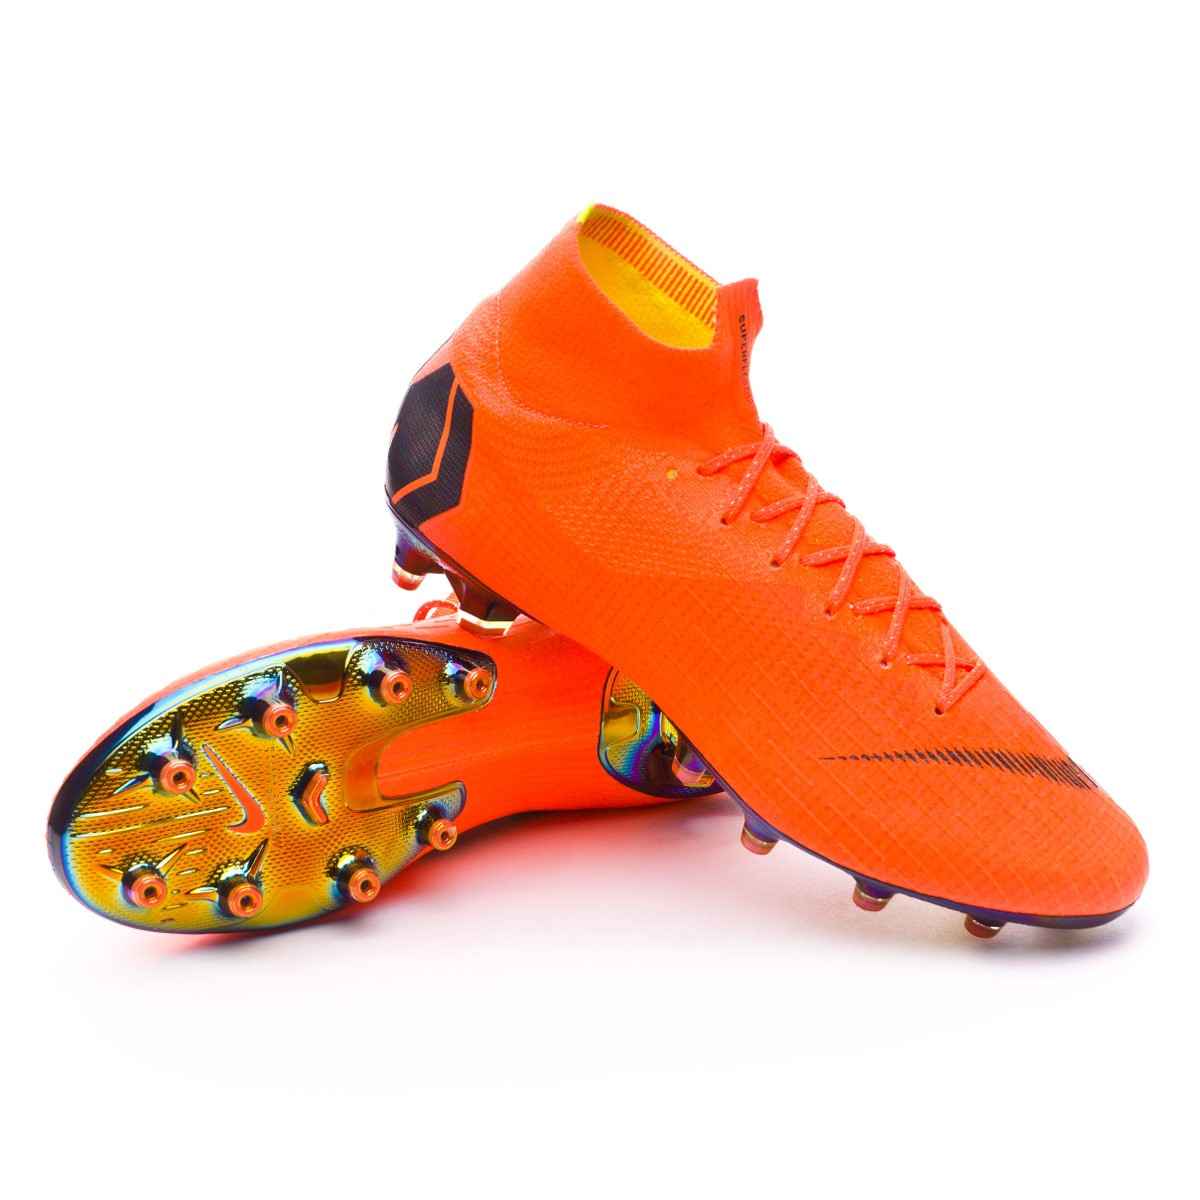 bfaa2946c632 Football Boots Nike Mercurial Superfly VI Elite AG-Pro Total orange ...